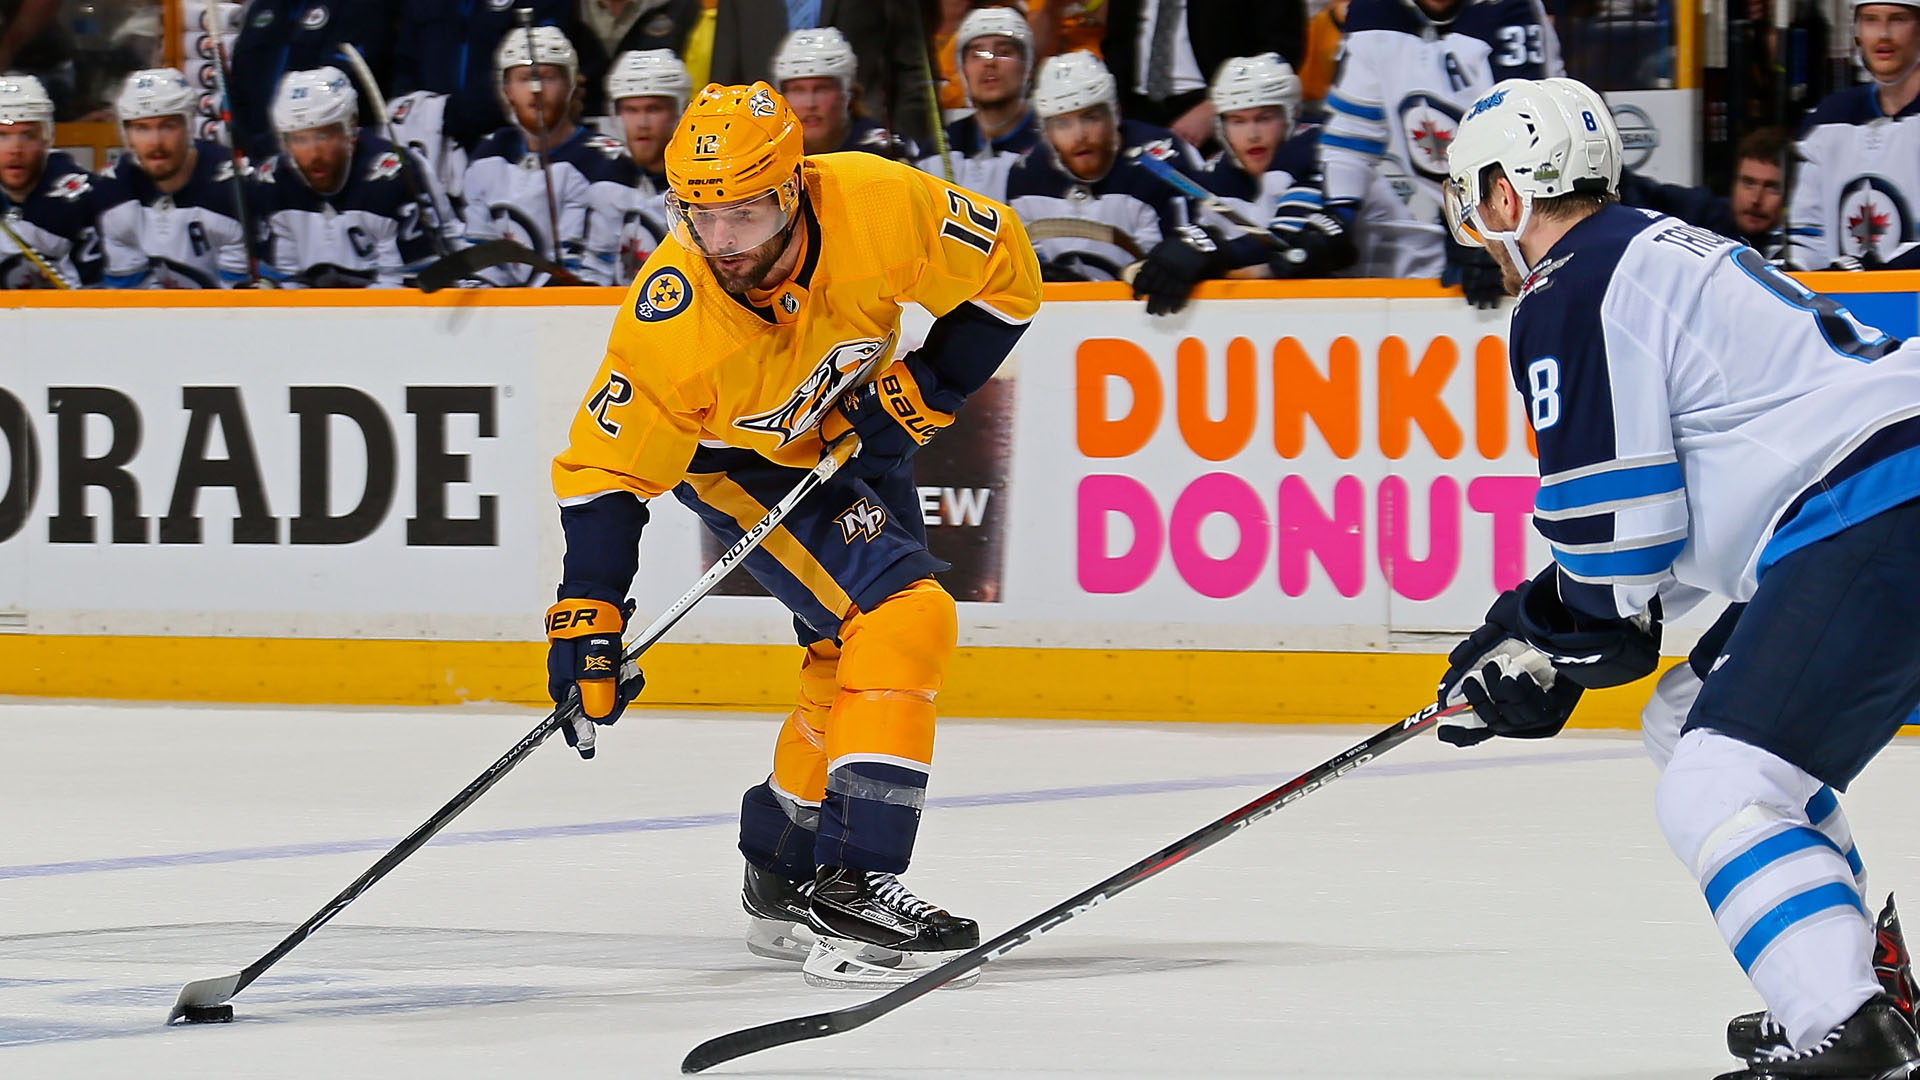 Jets beat Predators 5-1 in Game 7